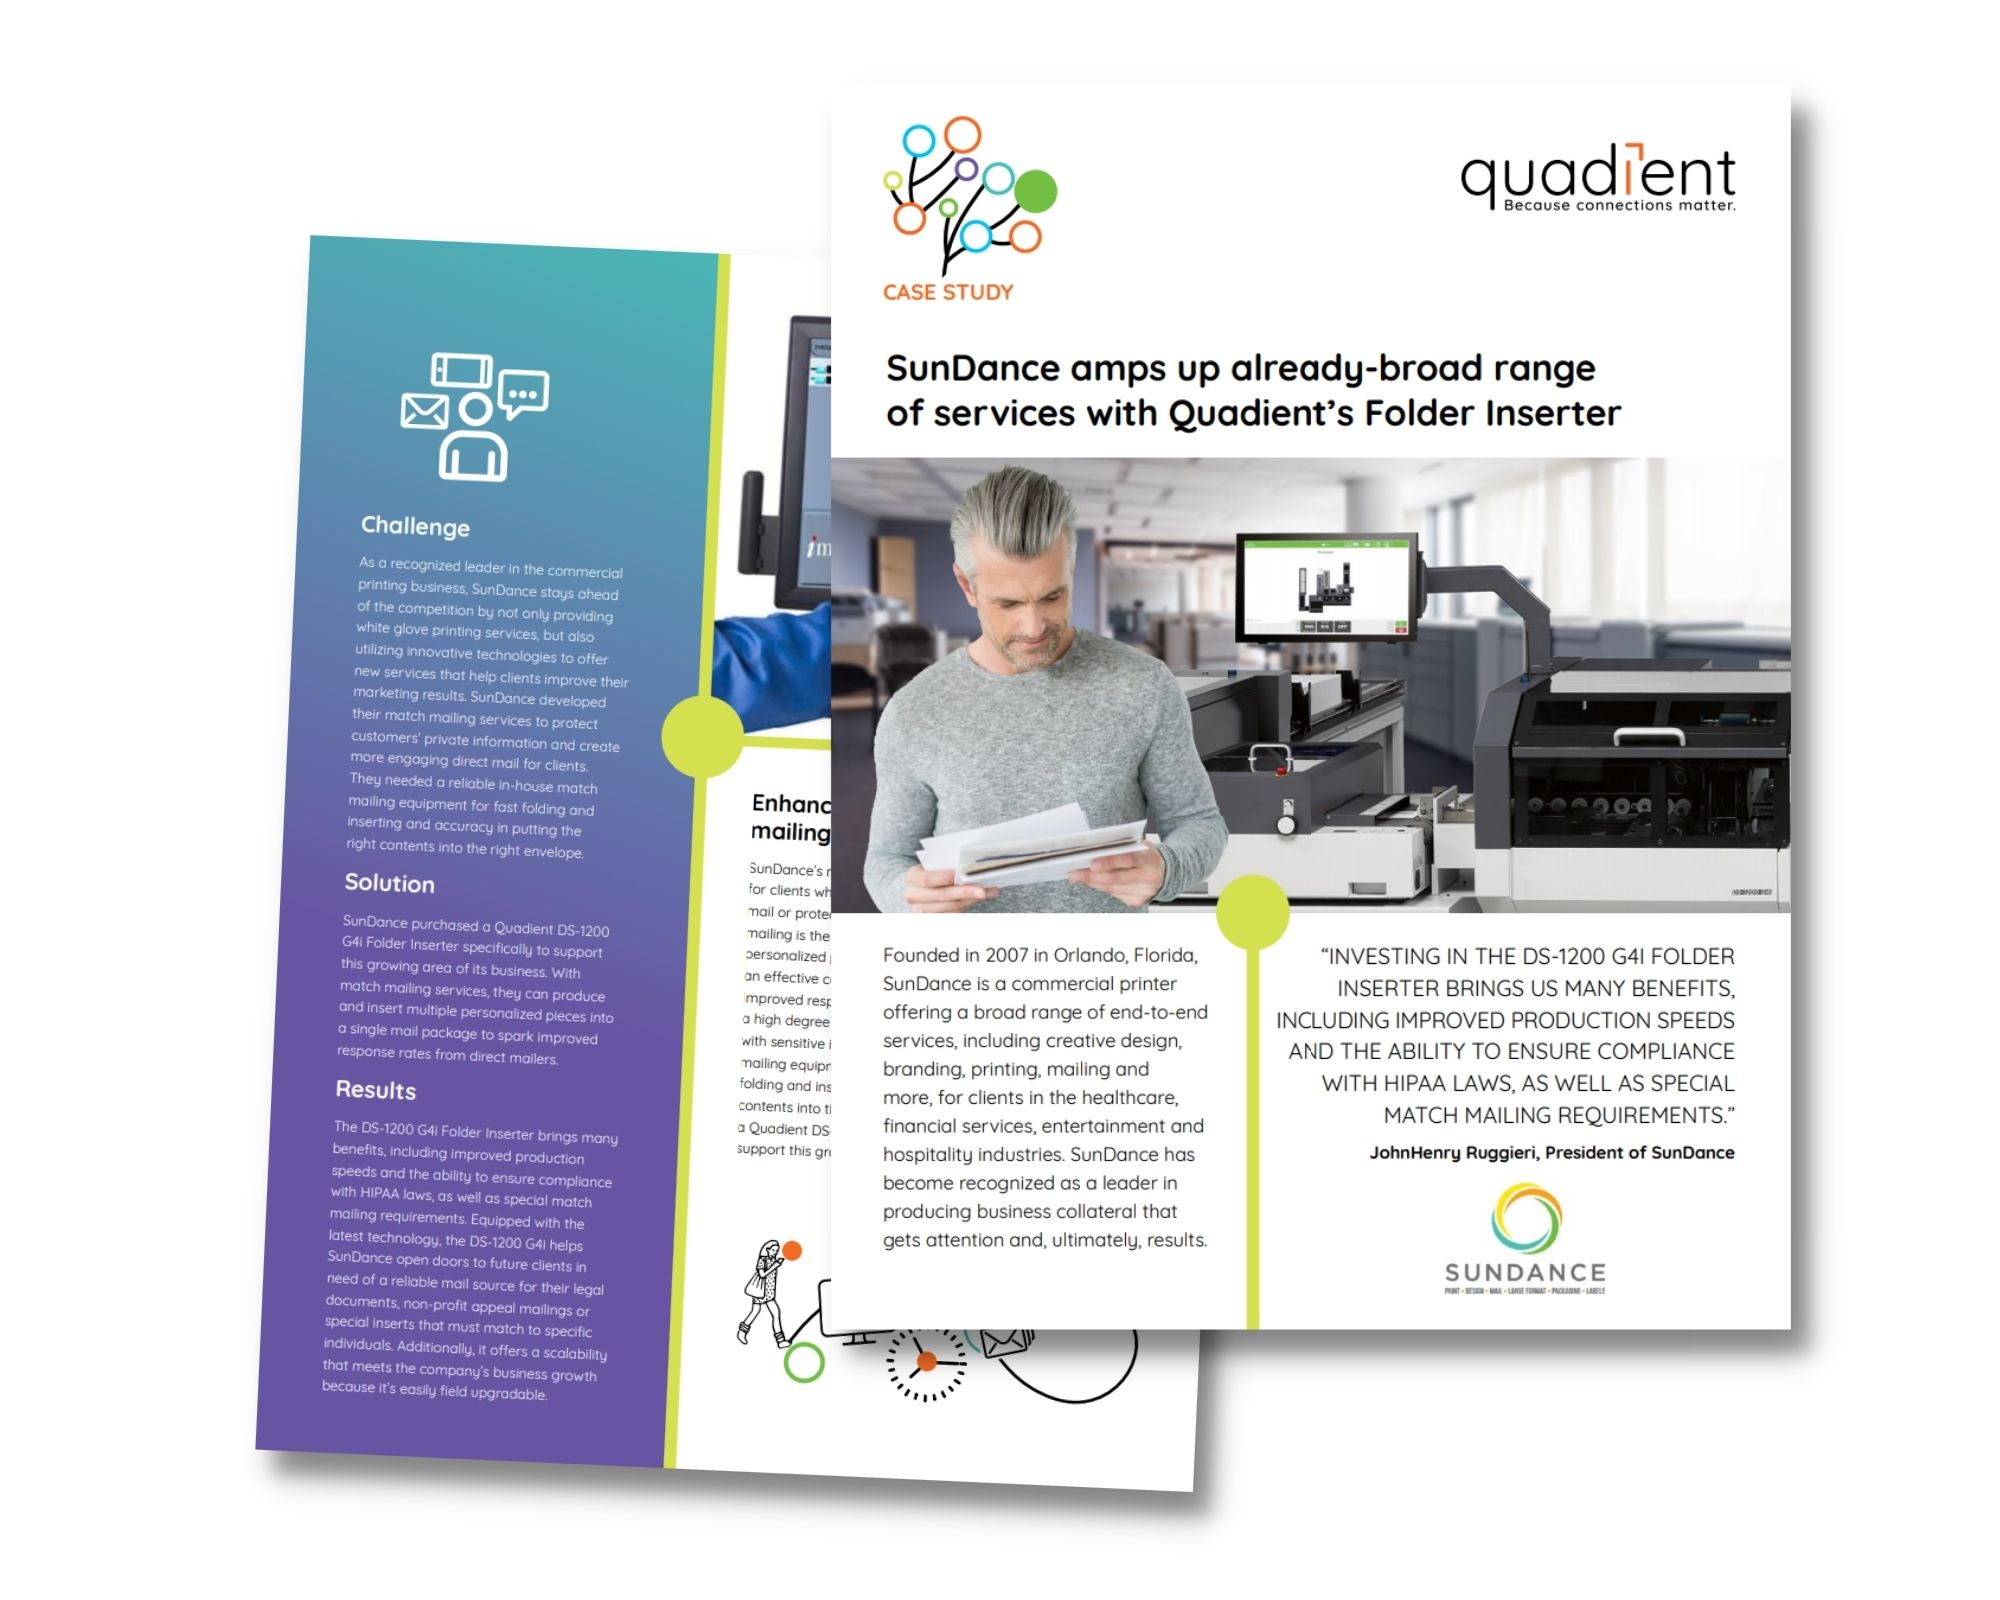 Quadient Case Study:SunDance amps up already-broad range of services with Quadient's Folder Inserter